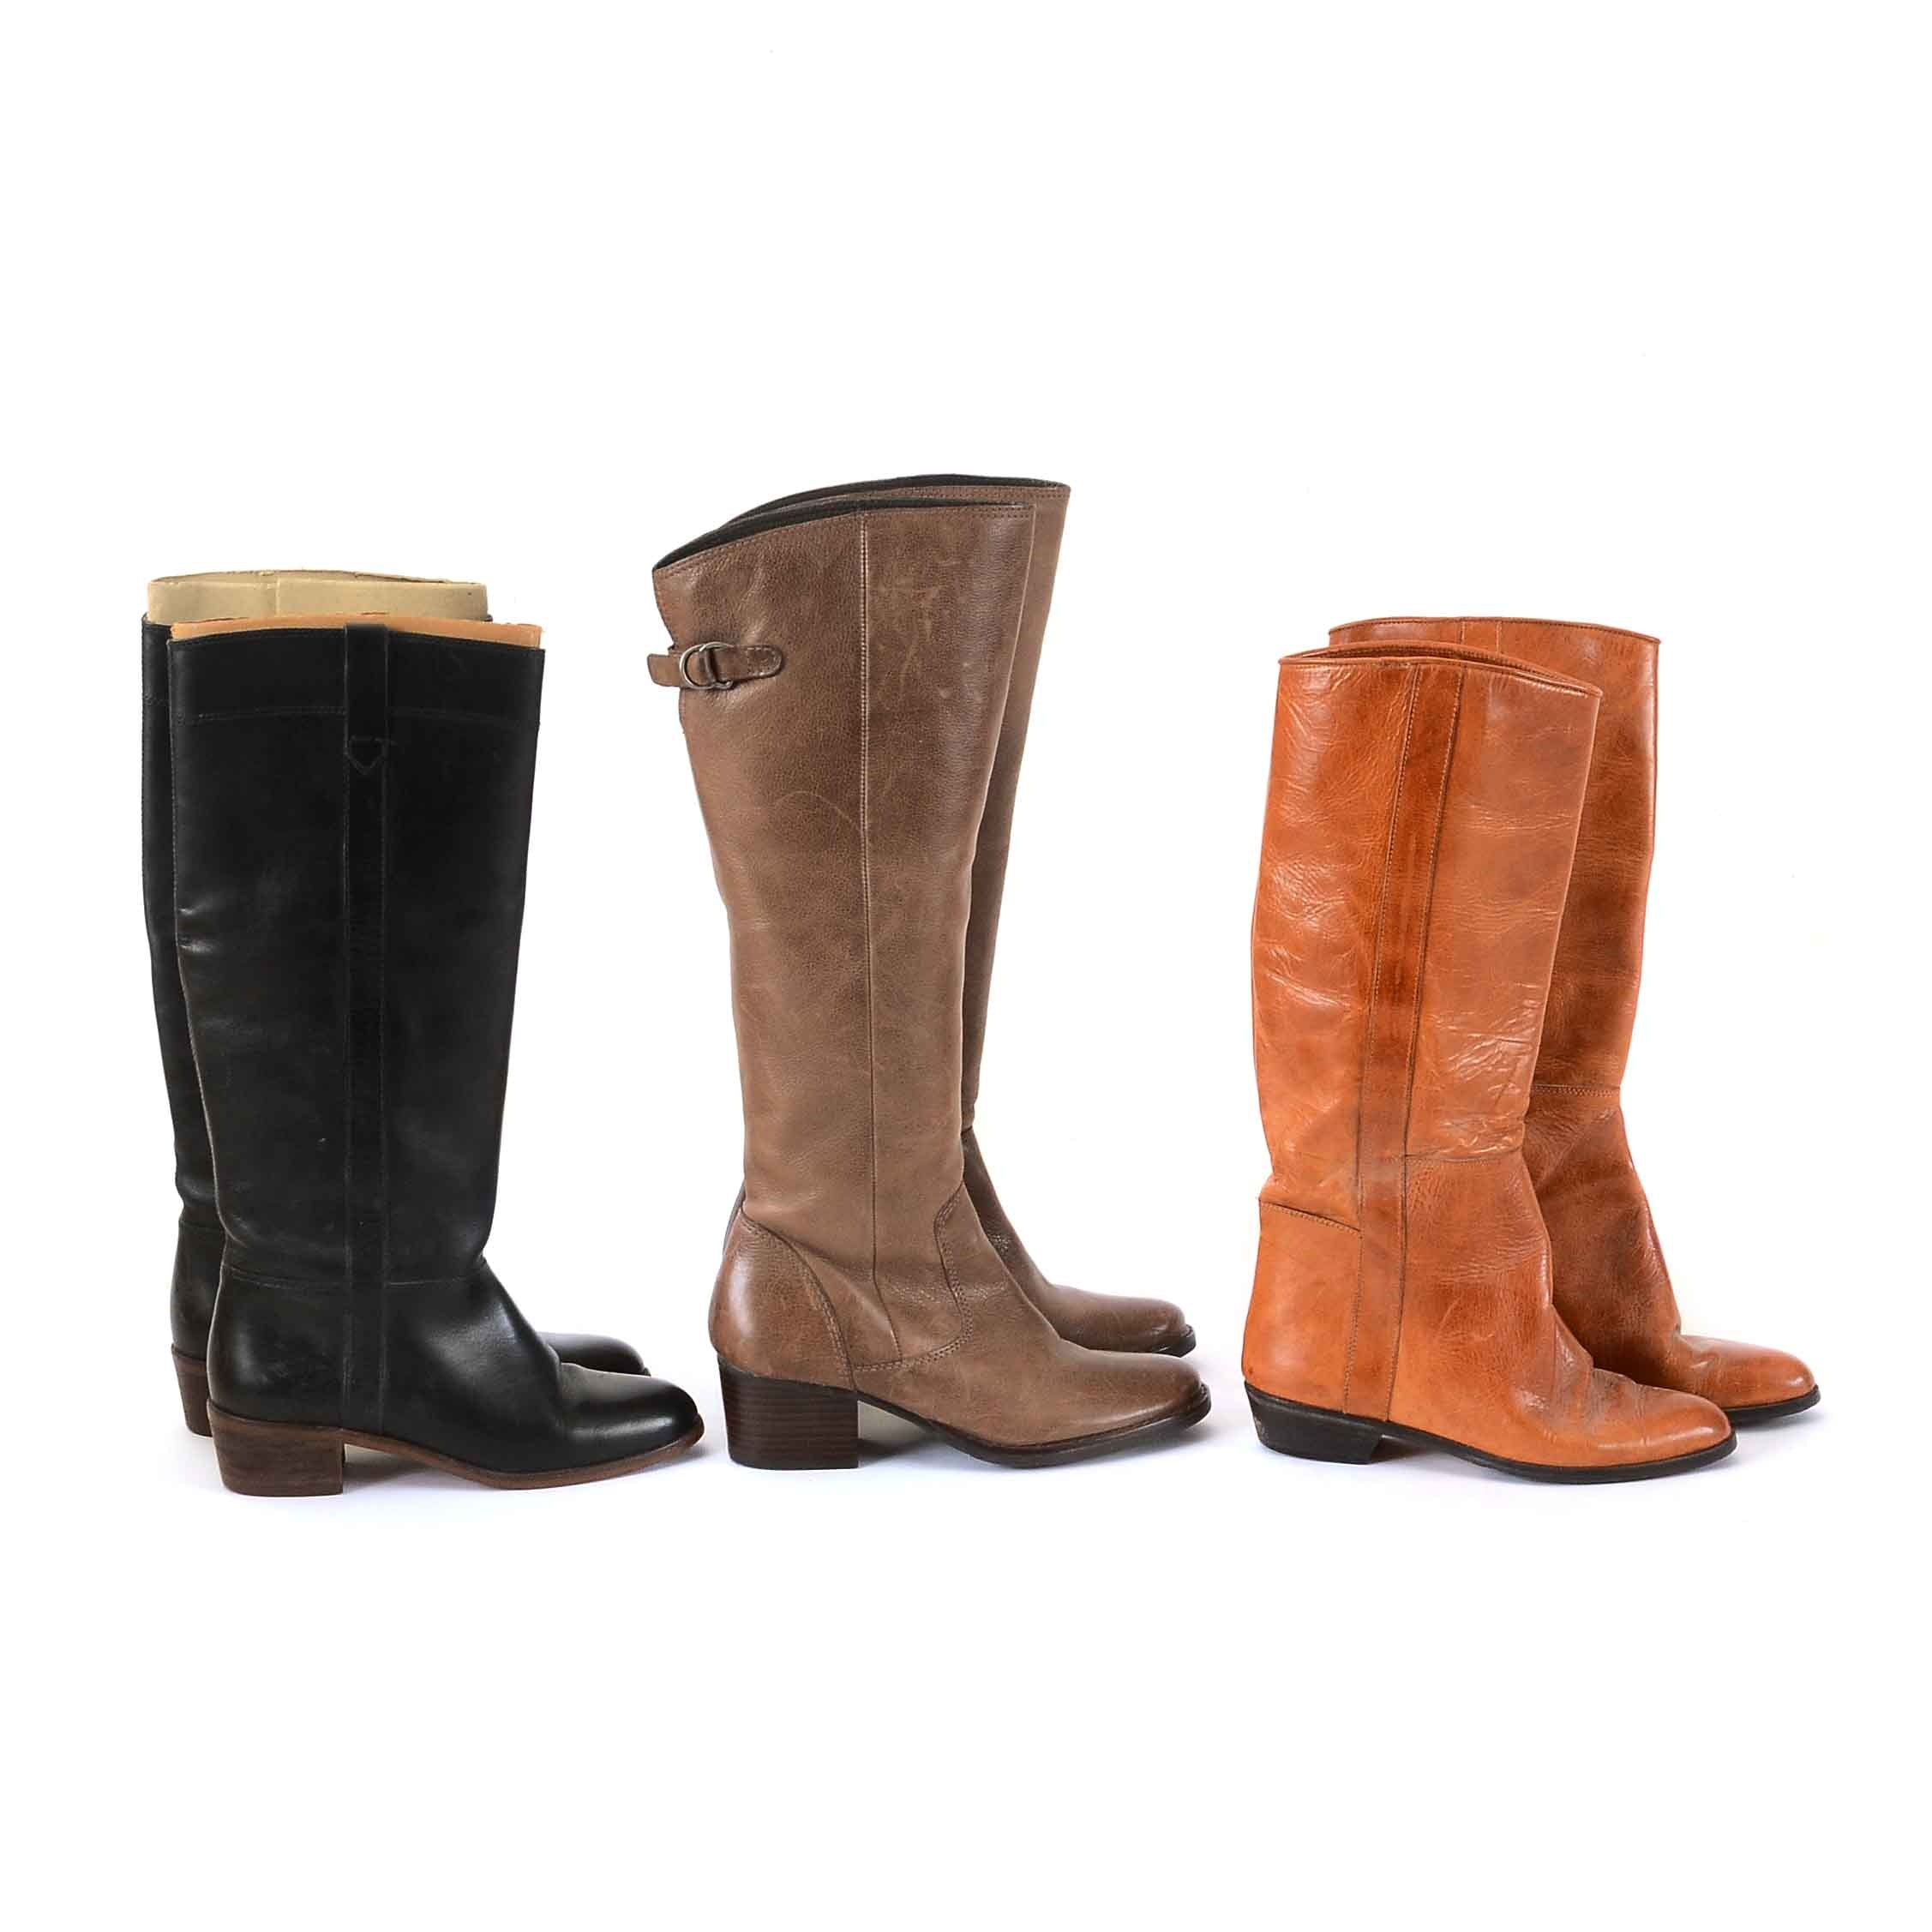 Collection of Women's Size 5.5 Leather Boots